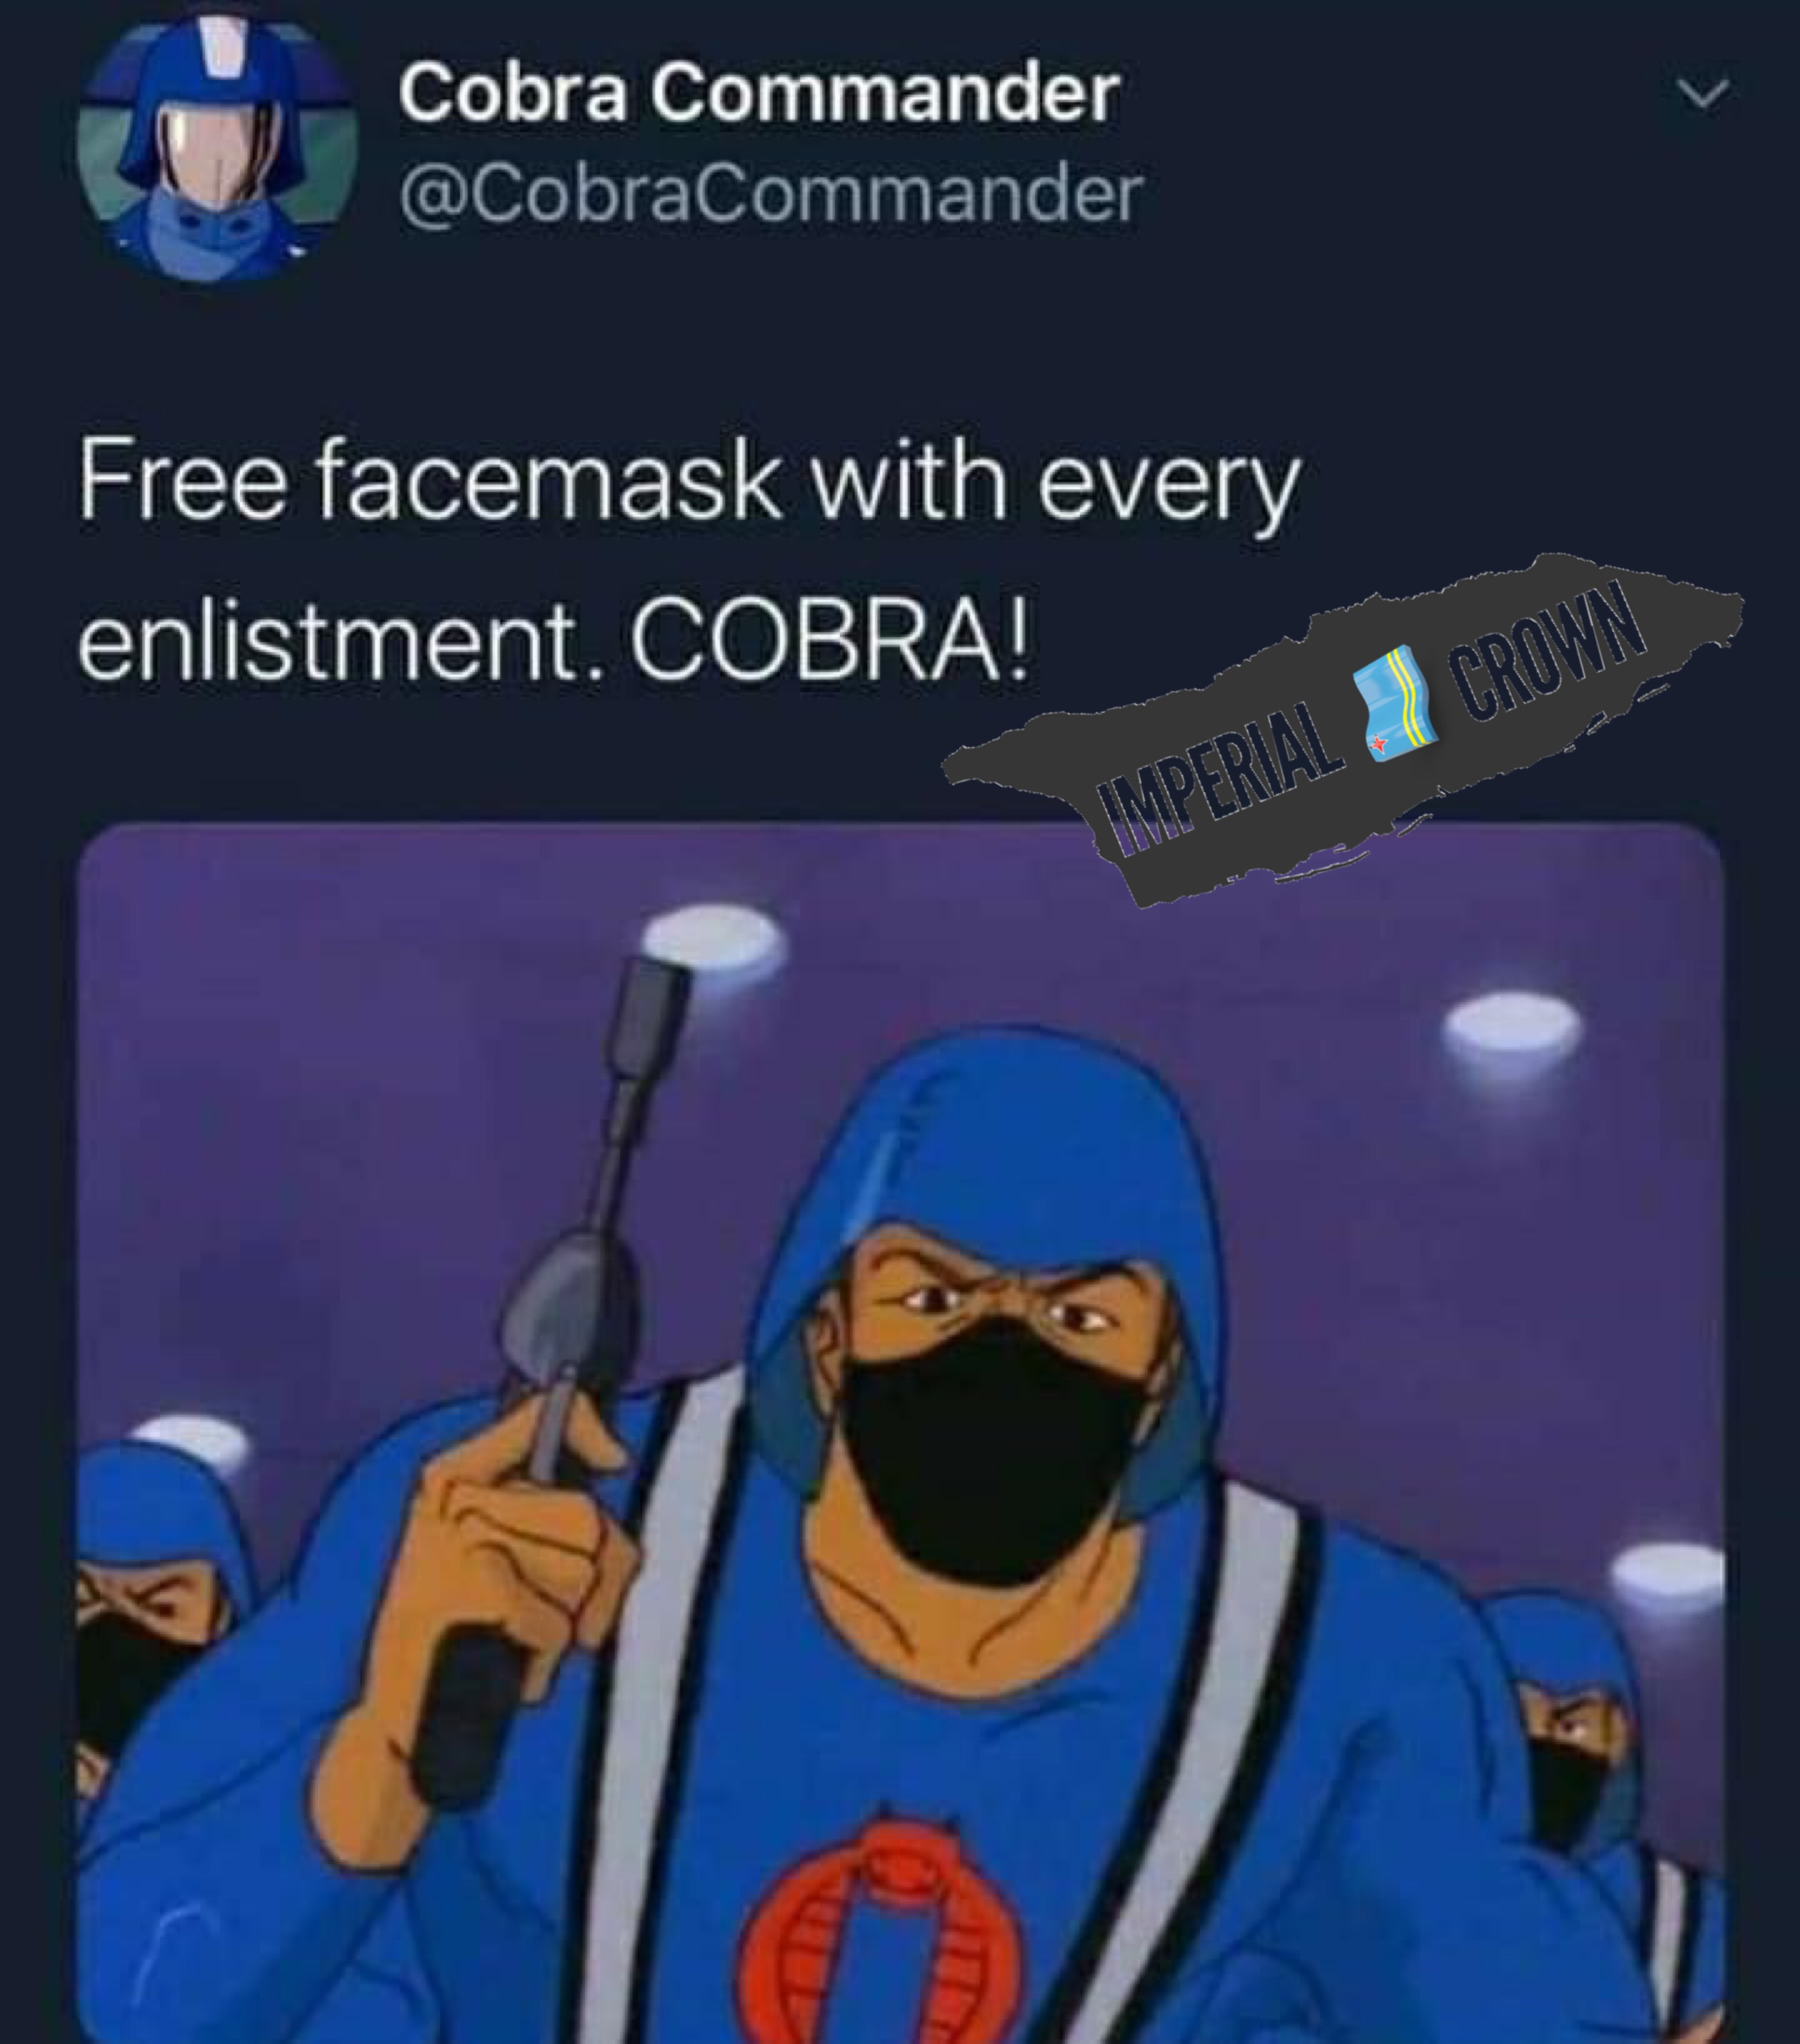 Free face mask with every enlisted COBRA